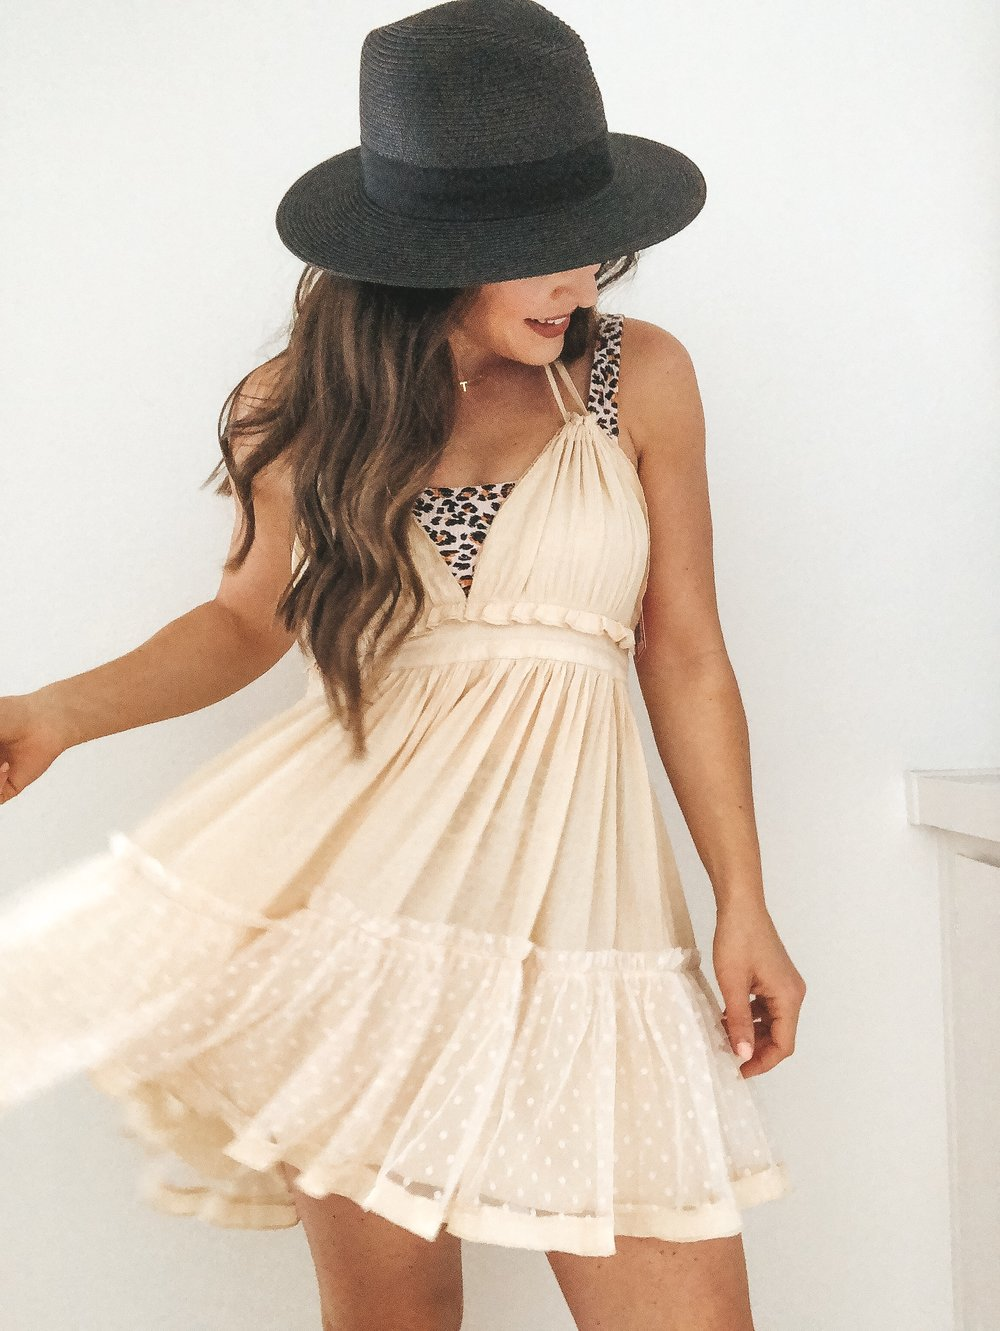 Amazon fashion finds.  Affordable fashion on Amazon.  Cute coverup for the beach or vacation.